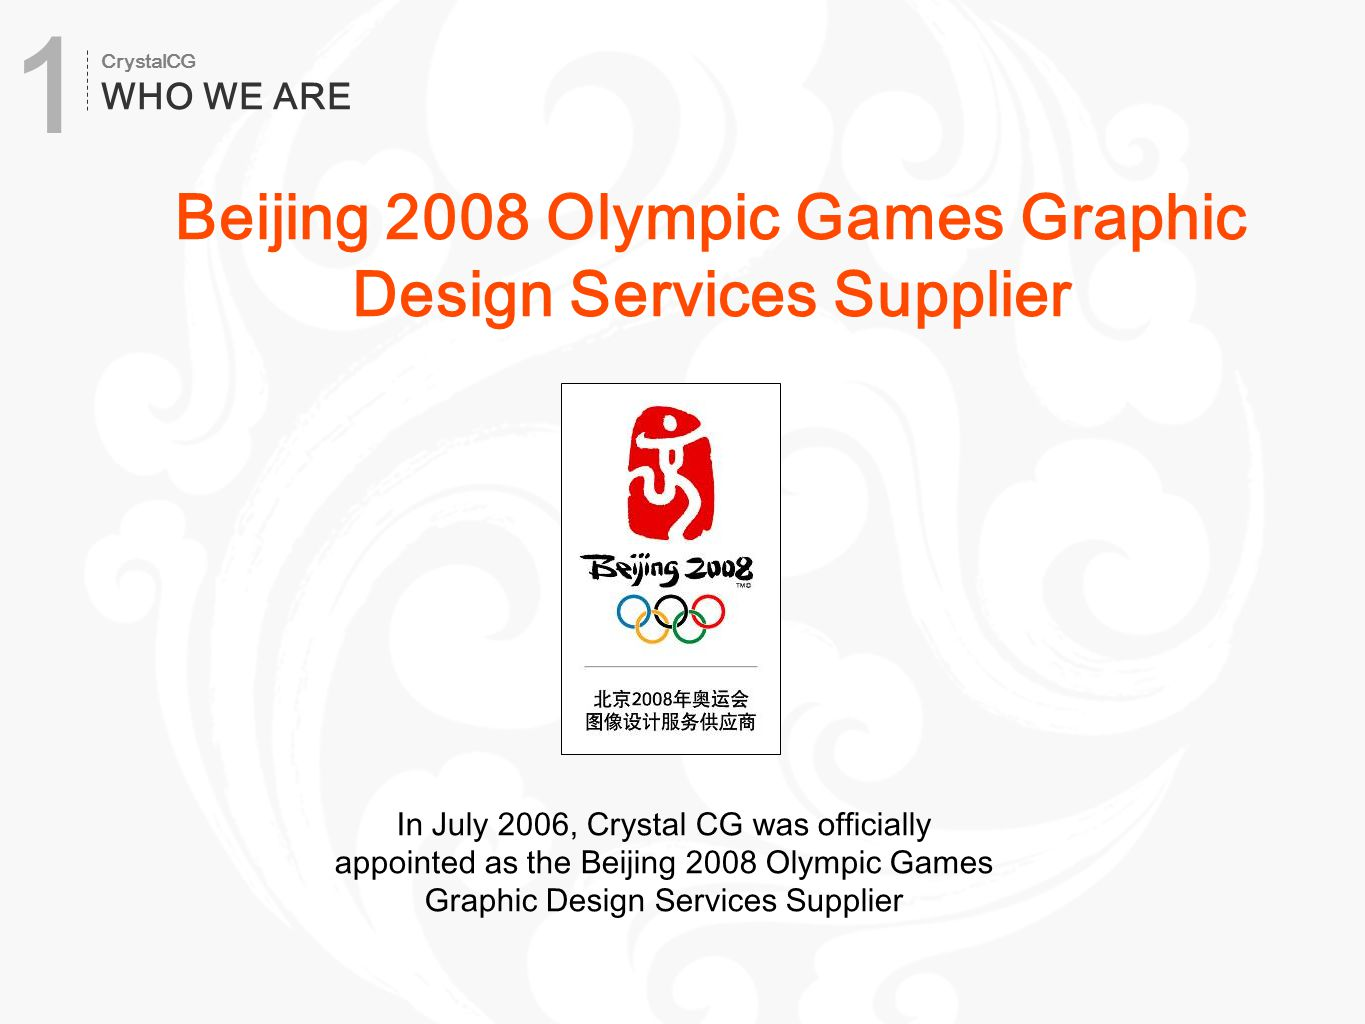 Shanghai 2010 EXPO Exhibition Planning Services Supplier In Nov 2007, Crystal CG was officially appointed as the Shanghai 2010 EXPO Exhibition planning Services Supplier, to provide the digital content and exhibition design for EXPO halls.